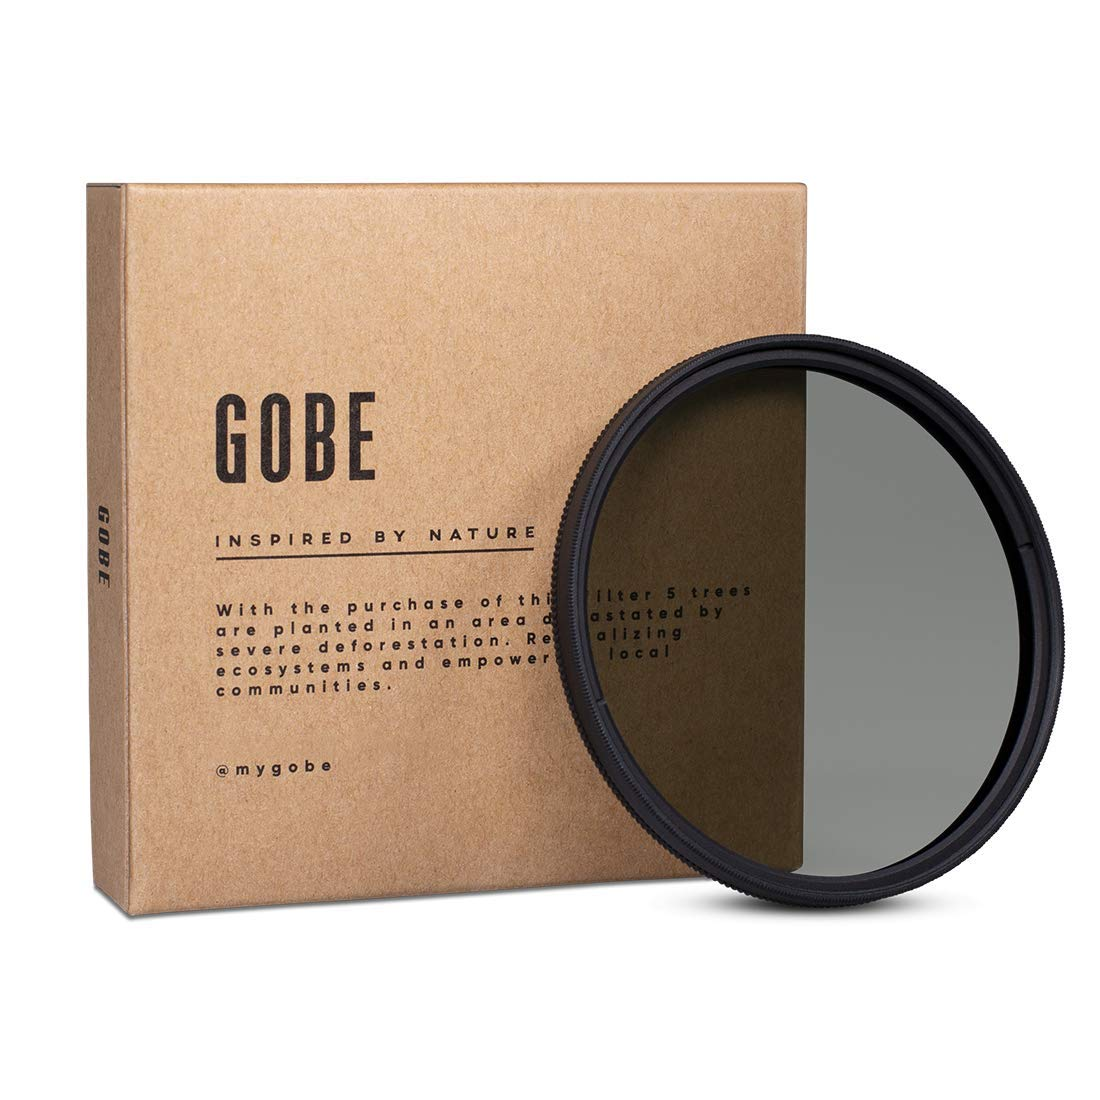 Gobe CPL 72mm Japan Optics 16-Layer Multi-Coated Polarized Filter by Gobe